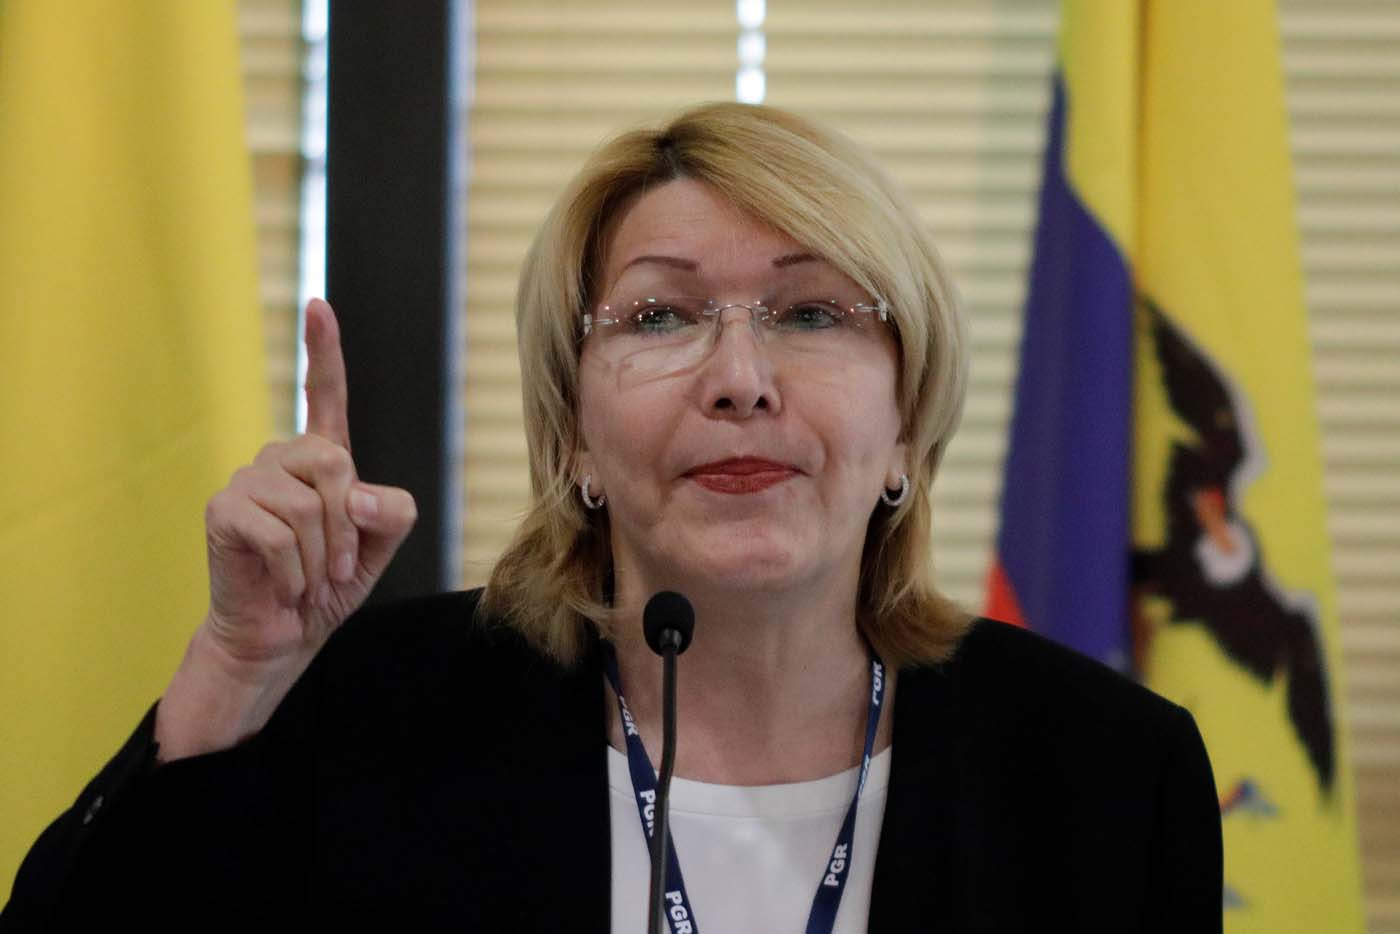 Venezuela's former chief prosecutor Luisa Ortega Diaz gestures during a meeting with representatives from the Latin American regional trading alliance Mercosur, in Brasilia, Brazil August 23, 2017. REUTERS/Ueslei Marcelino